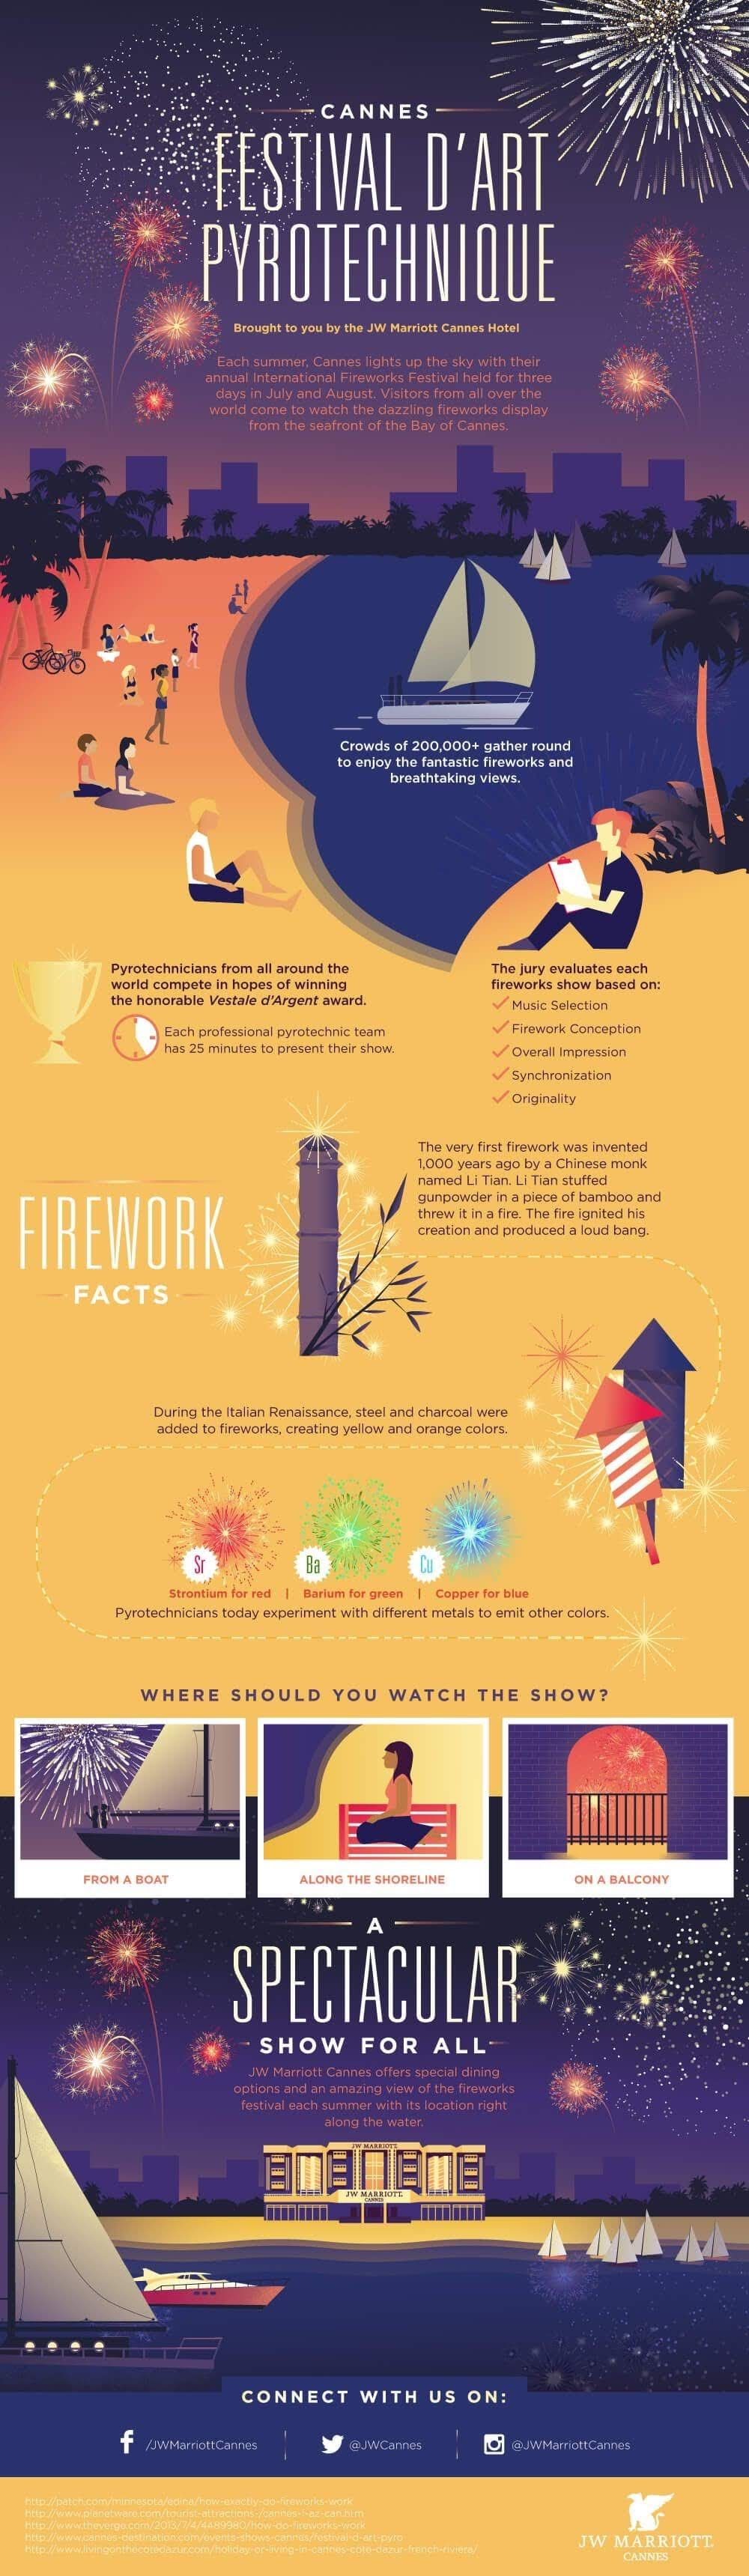 festival-dart-pyrotechnique-cannes-infographic